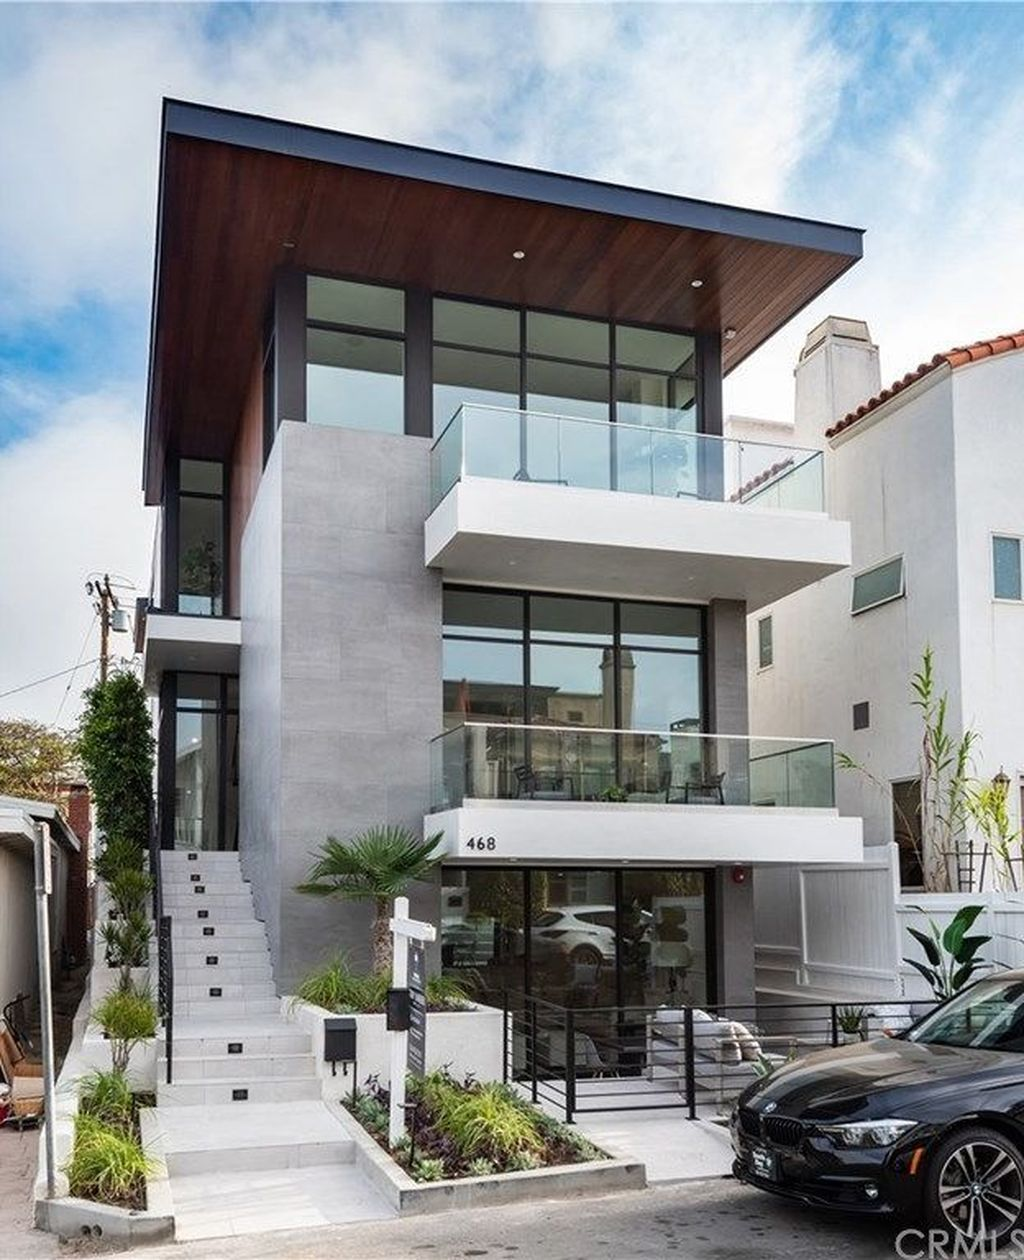 36 Trendy Contemporary Townhouse Design Ideas That Make Your Place Look Cool Townhouse Designs Fancy Houses Narrow House Designs